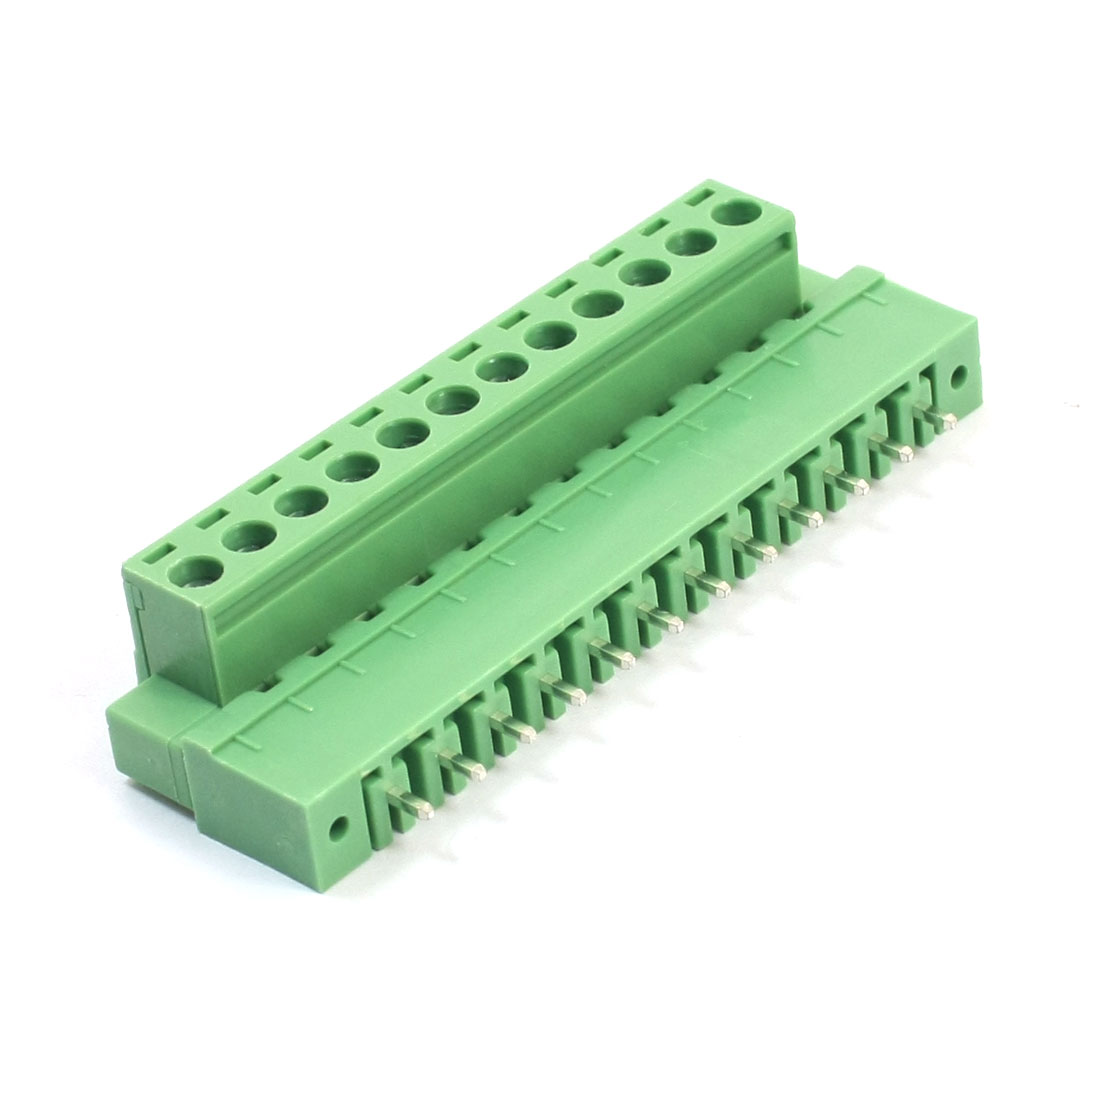 300V 10A 5.08mm Spacing 12-Pin 12-Position Pluggable Type PCB Surface Mount Green Plastic Screw Terminal Barrier Block Connector